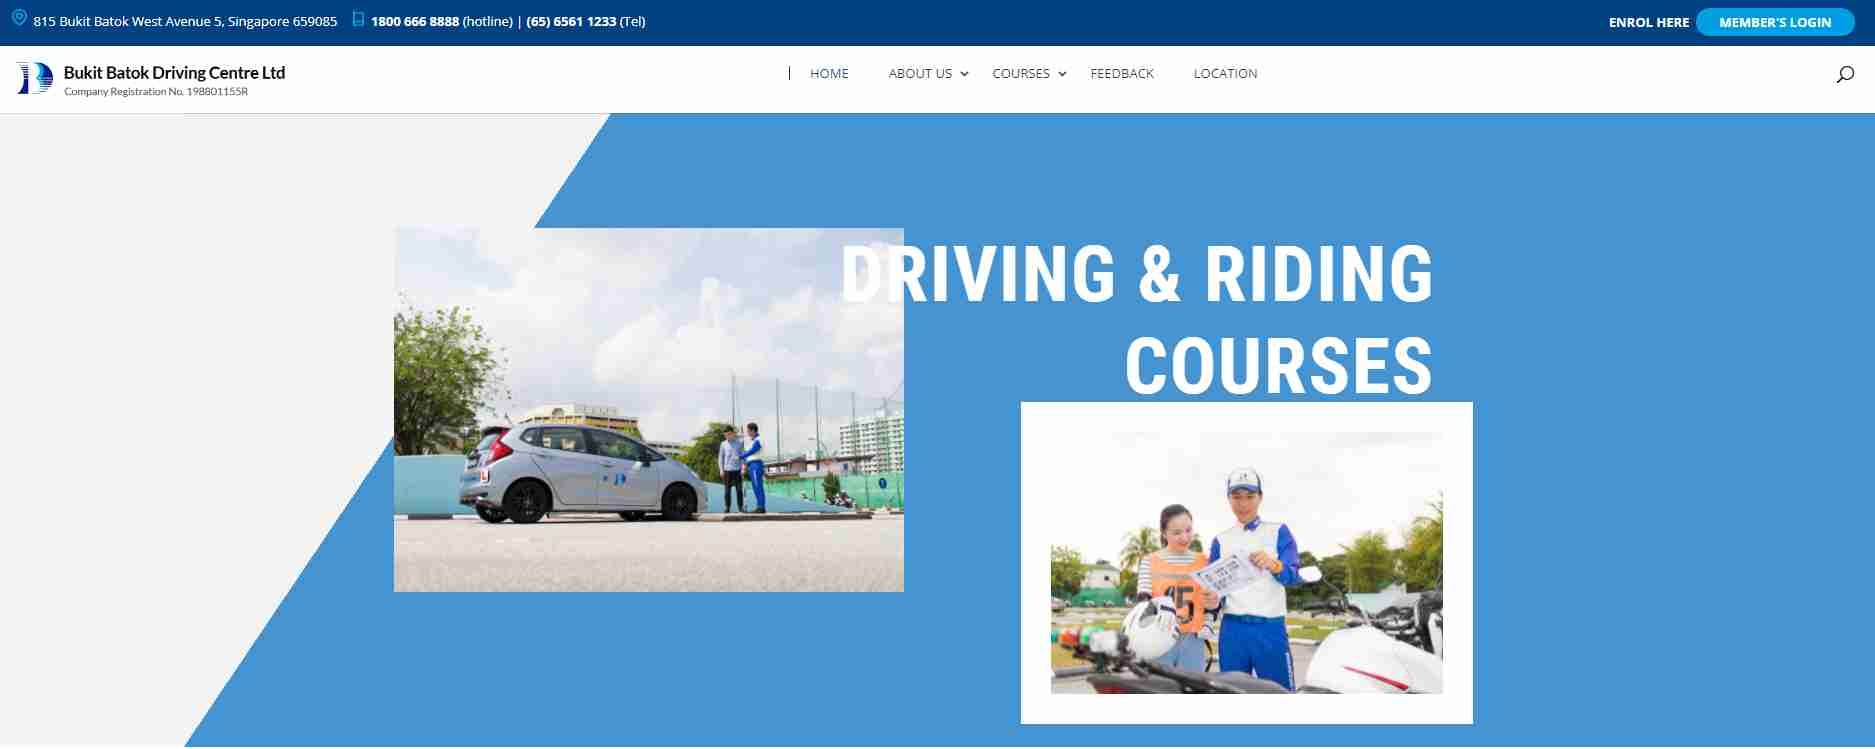 bbdc Top Driving Schools in Singapore